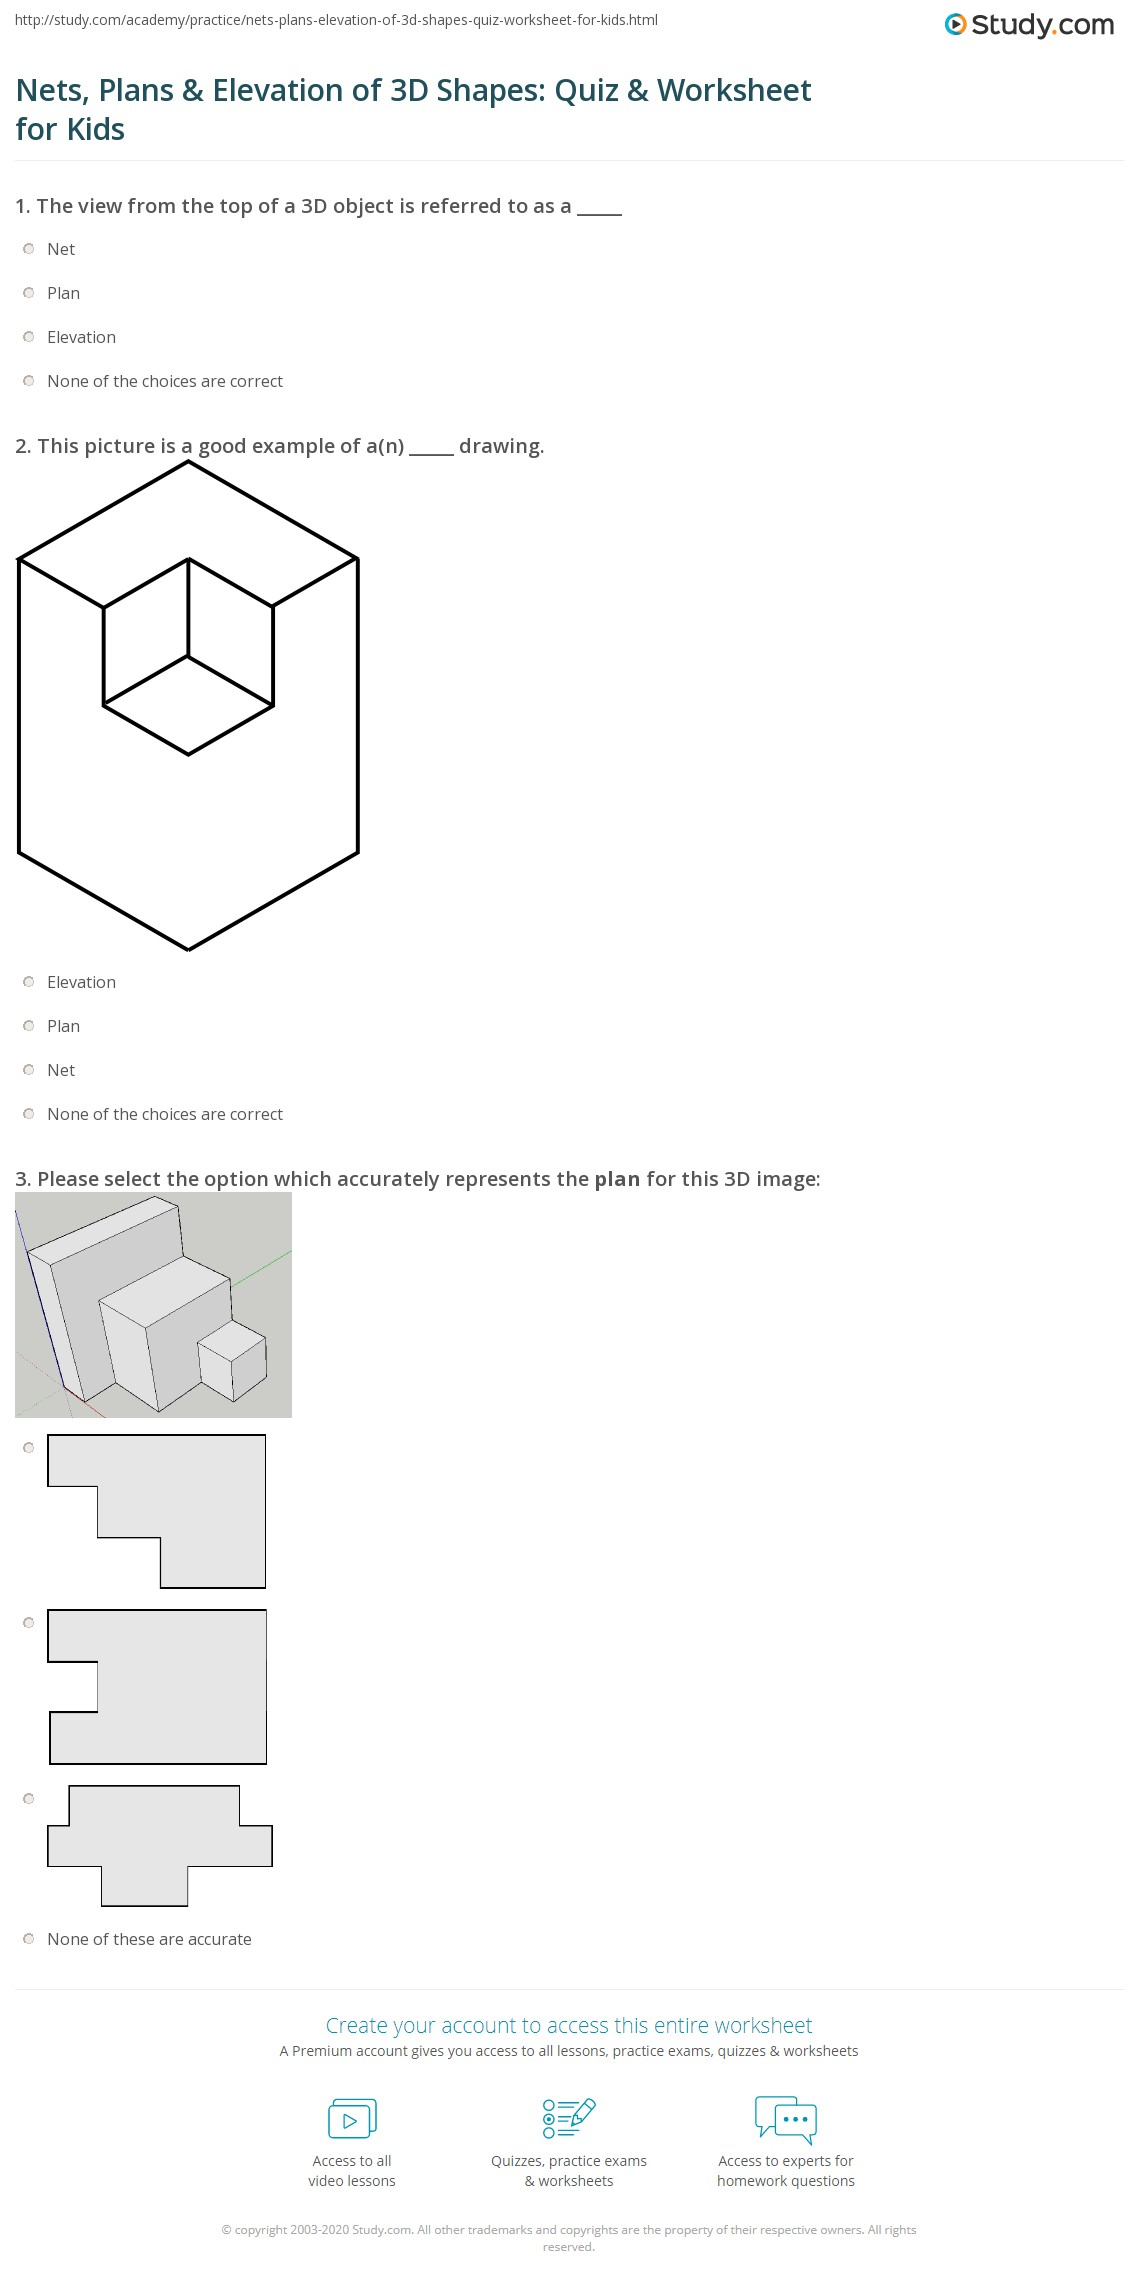 Nets Plans Amp Elevation Of 3d Shapes Quiz Amp Worksheet For